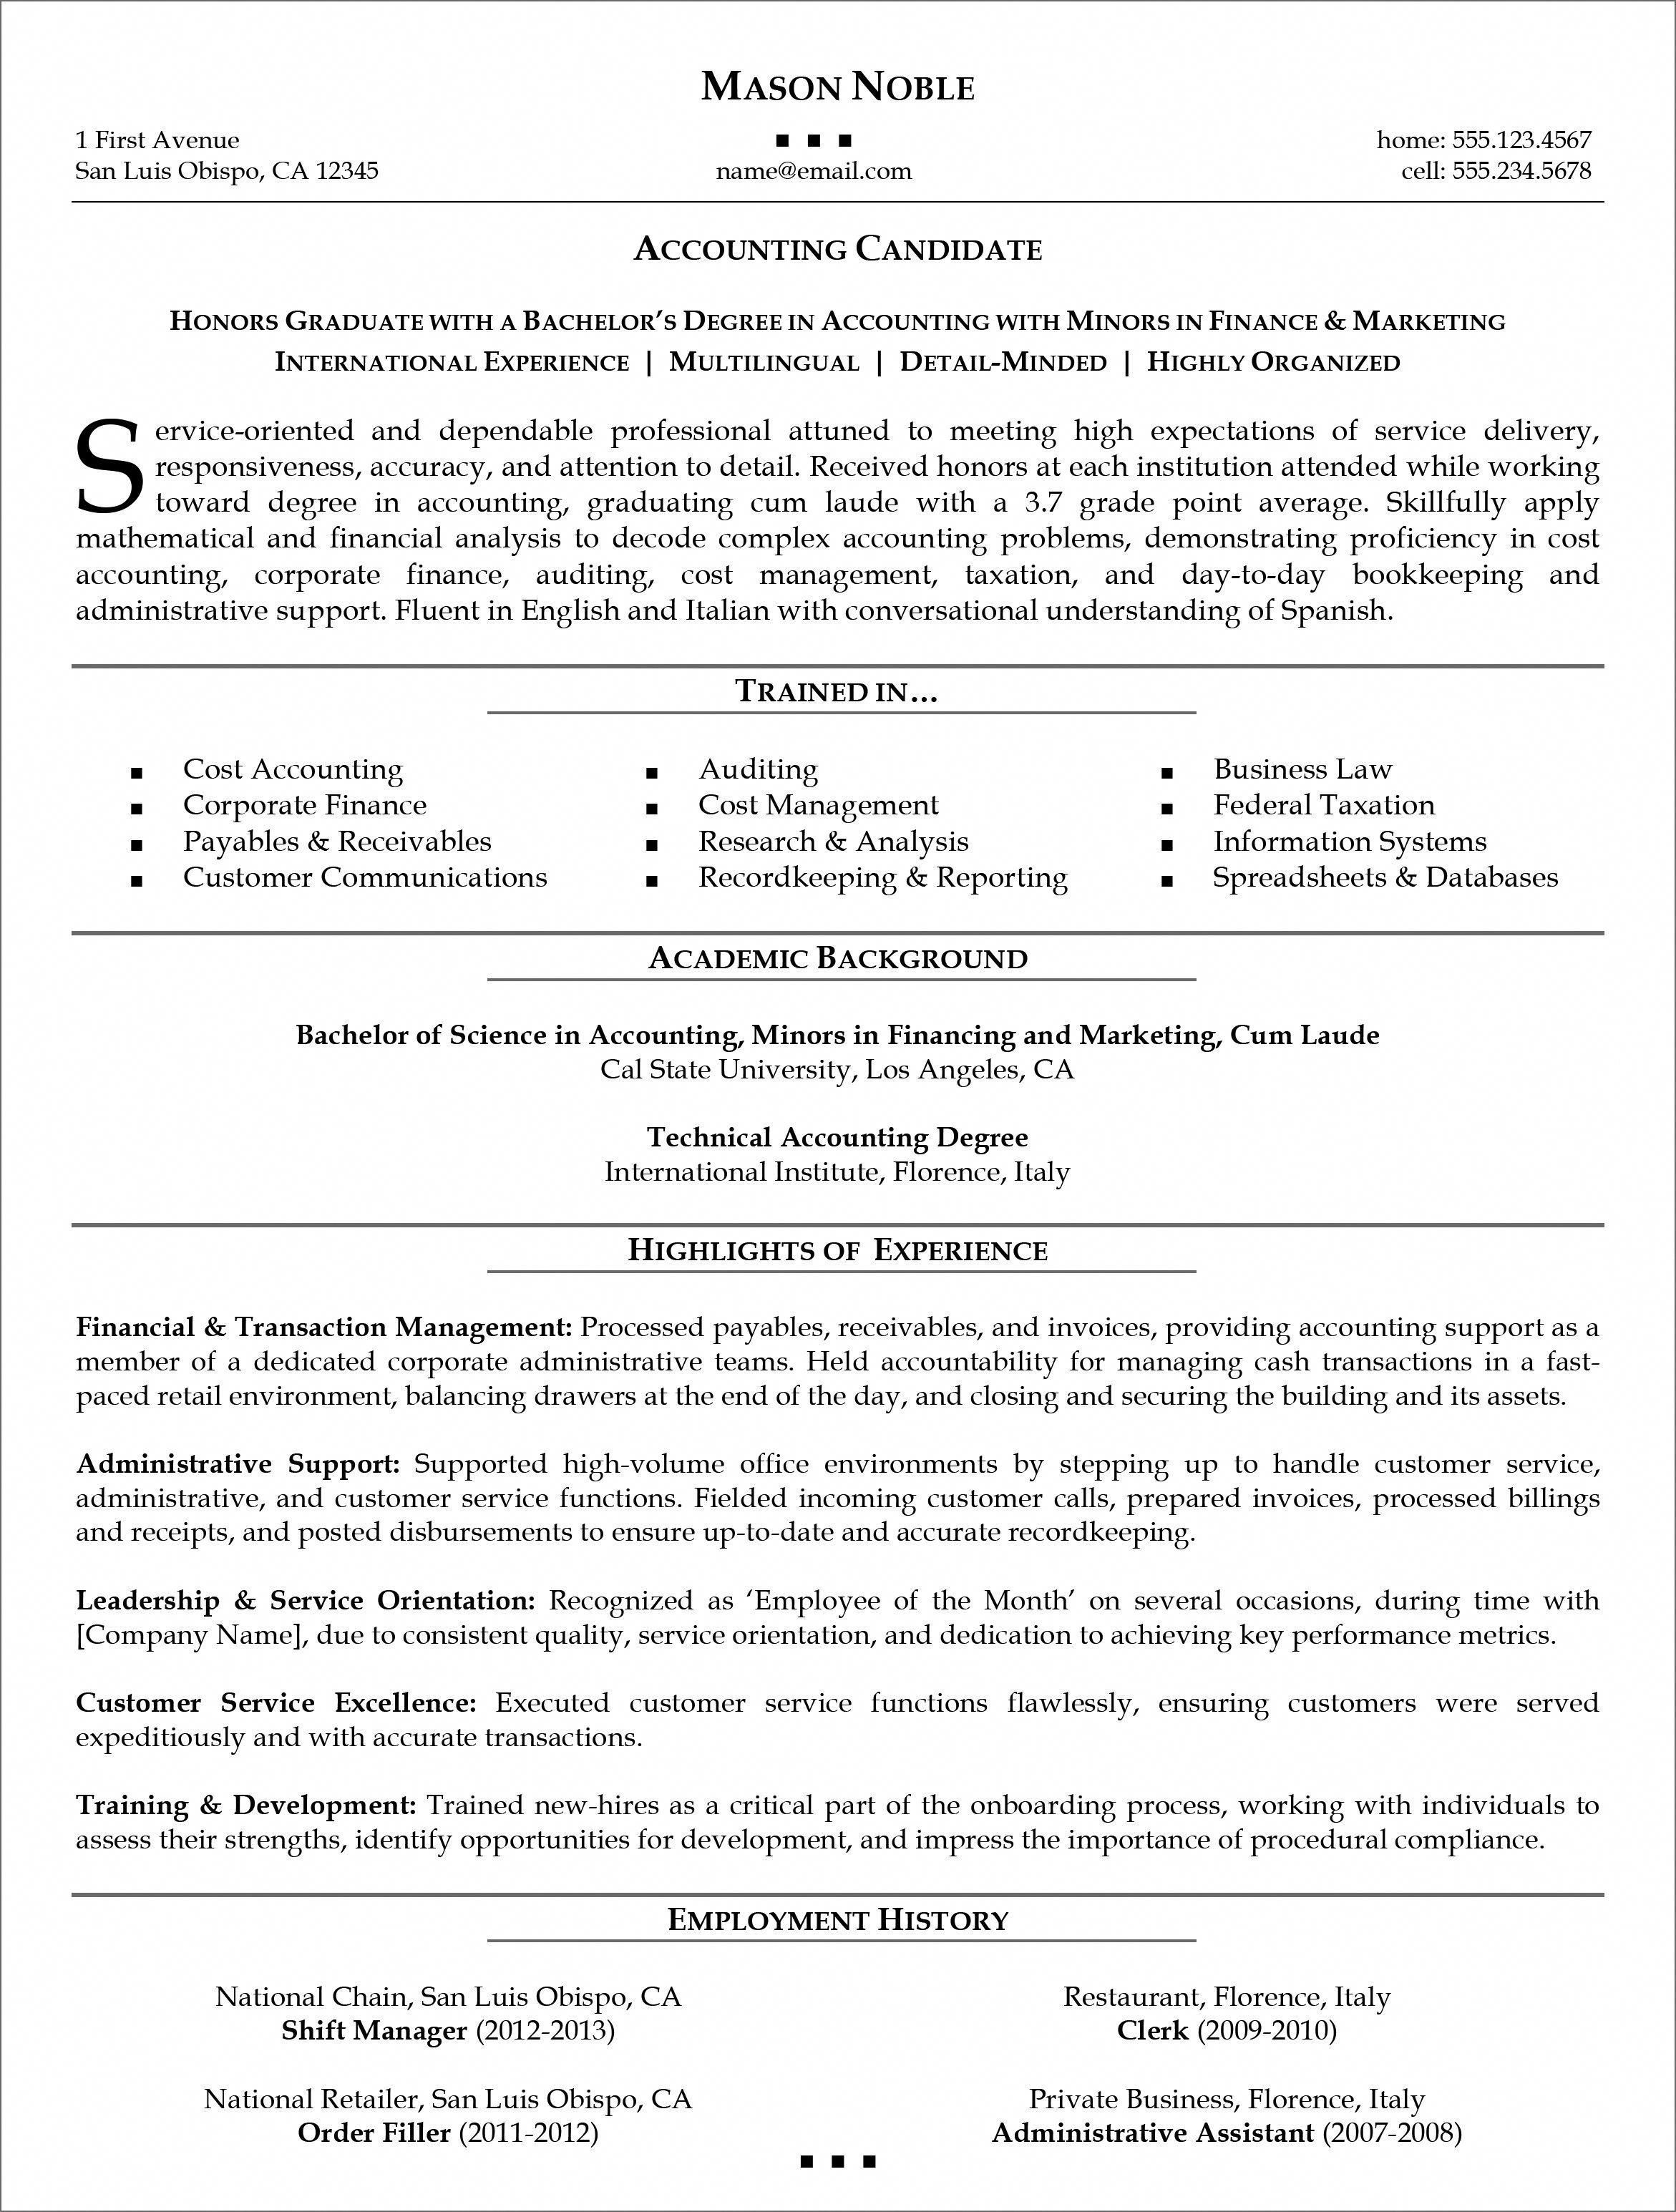 Caring retail resume examples careerchoicesraspy career